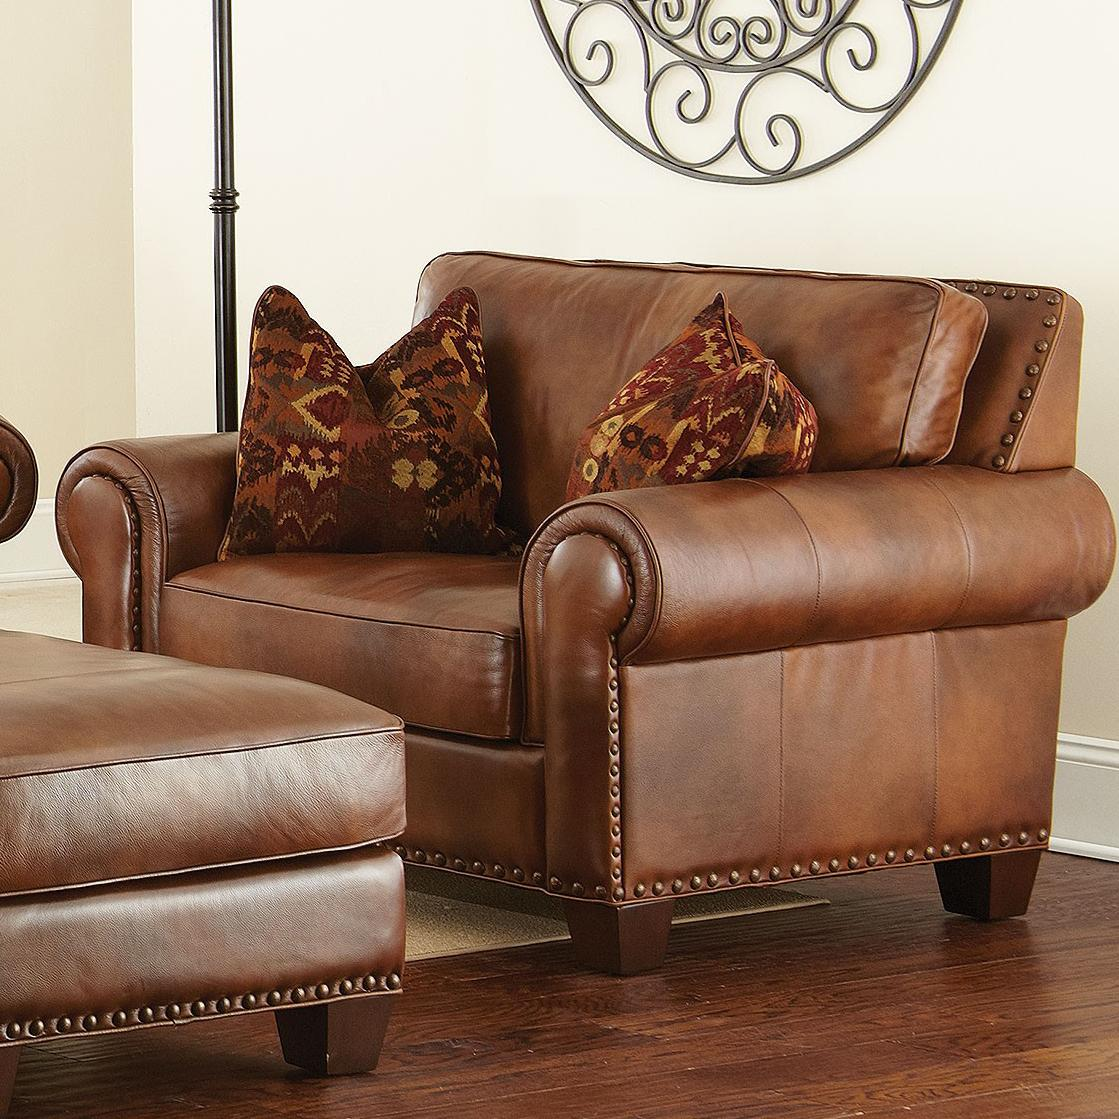 Silverado Traditional Chair and a Half by Steve Silver at Northeast Factory Direct